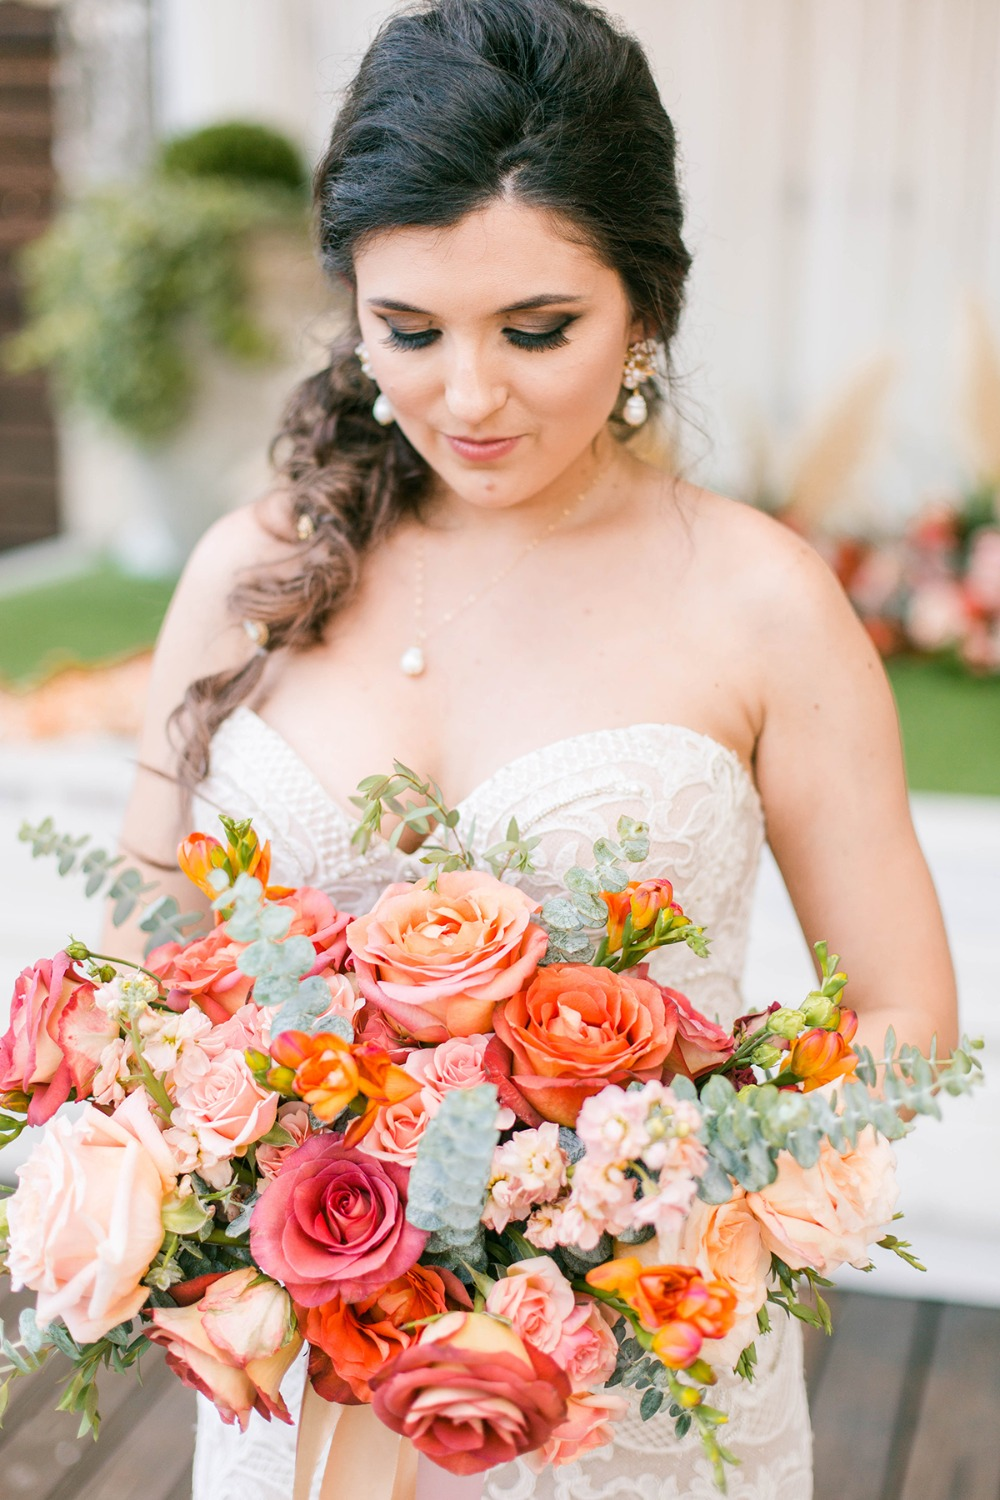 bight and summery wedding bouquet